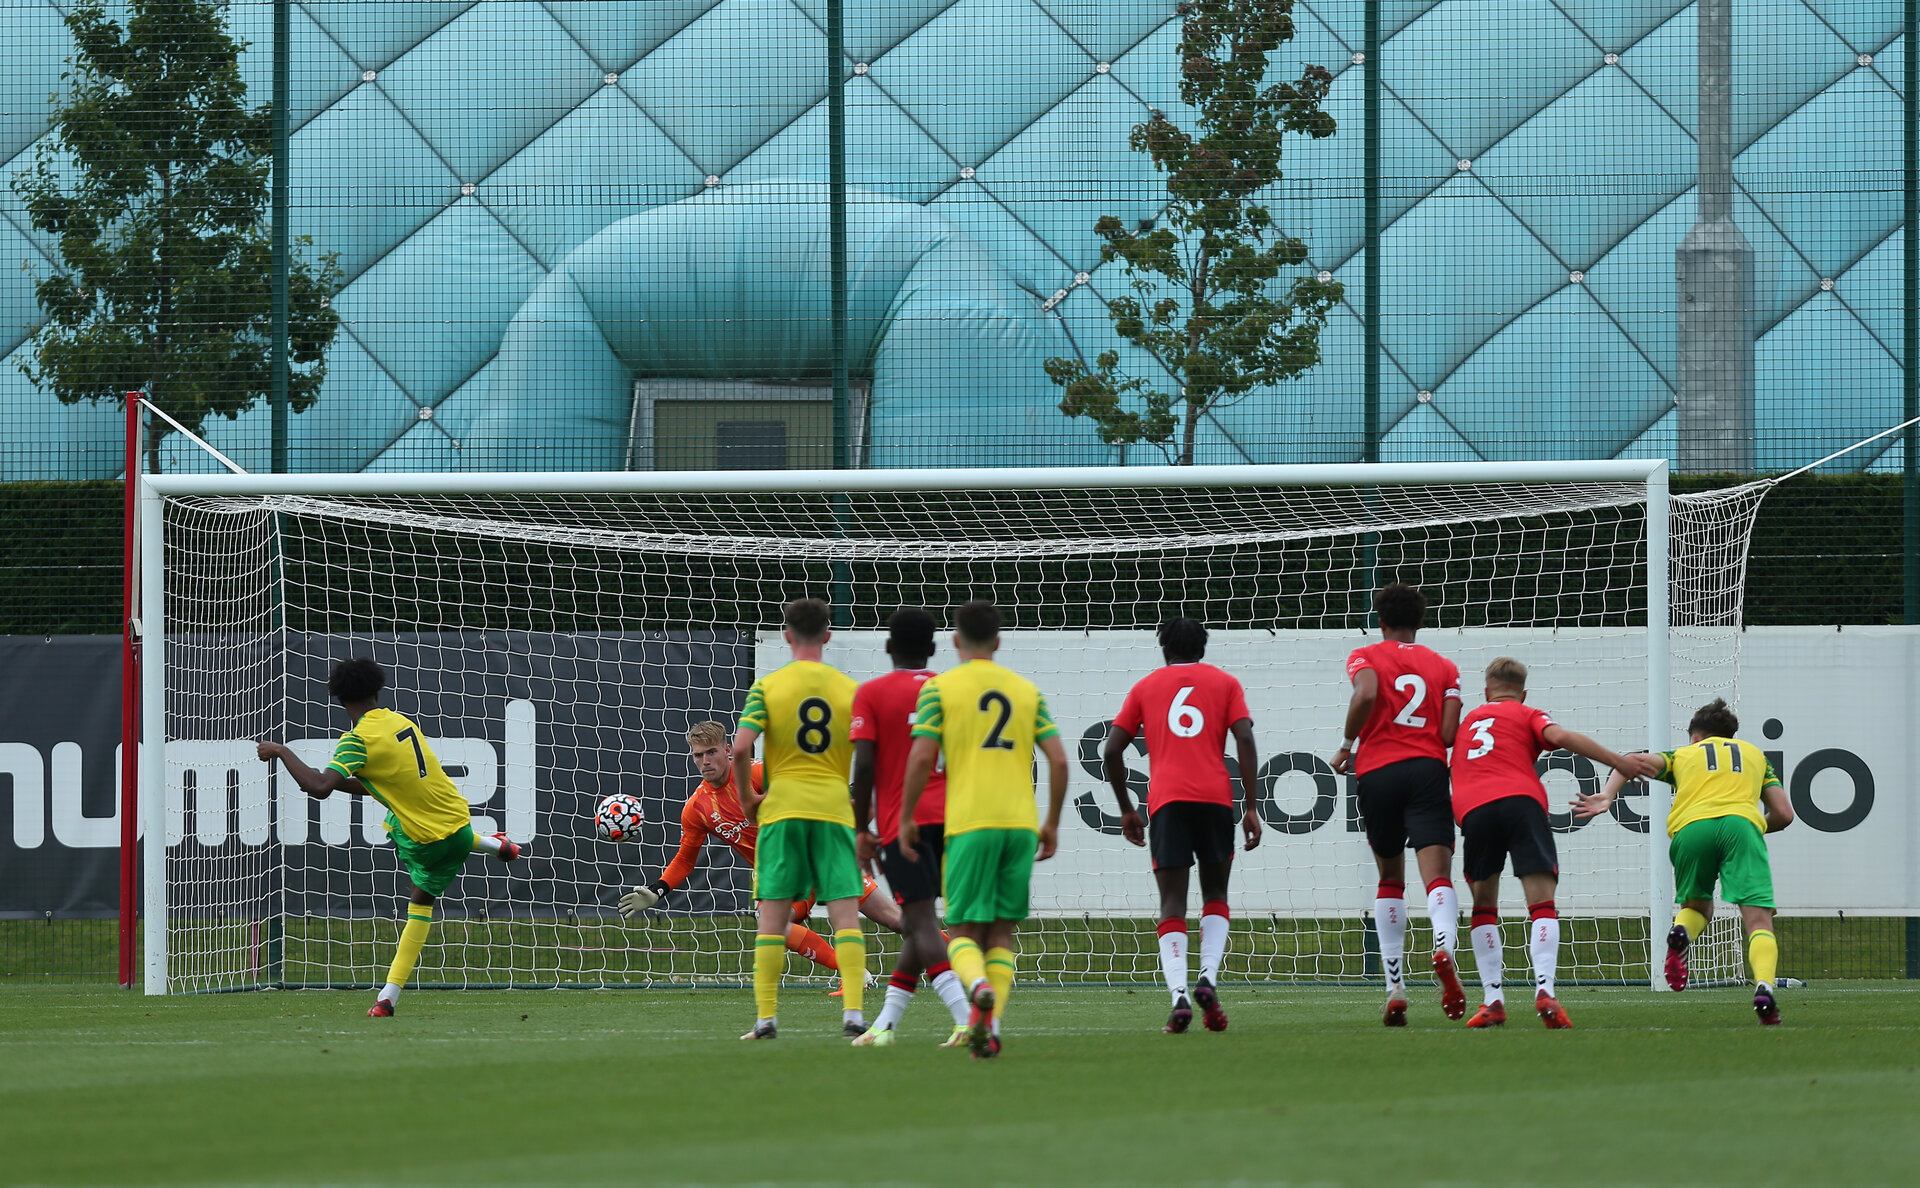 Southampton B v Norwich B, Premier League 2, Division 2, Staplewood Campus, Marchwood, Southampton Picture: Chris Moorhouse  Sunday 15th August 2021